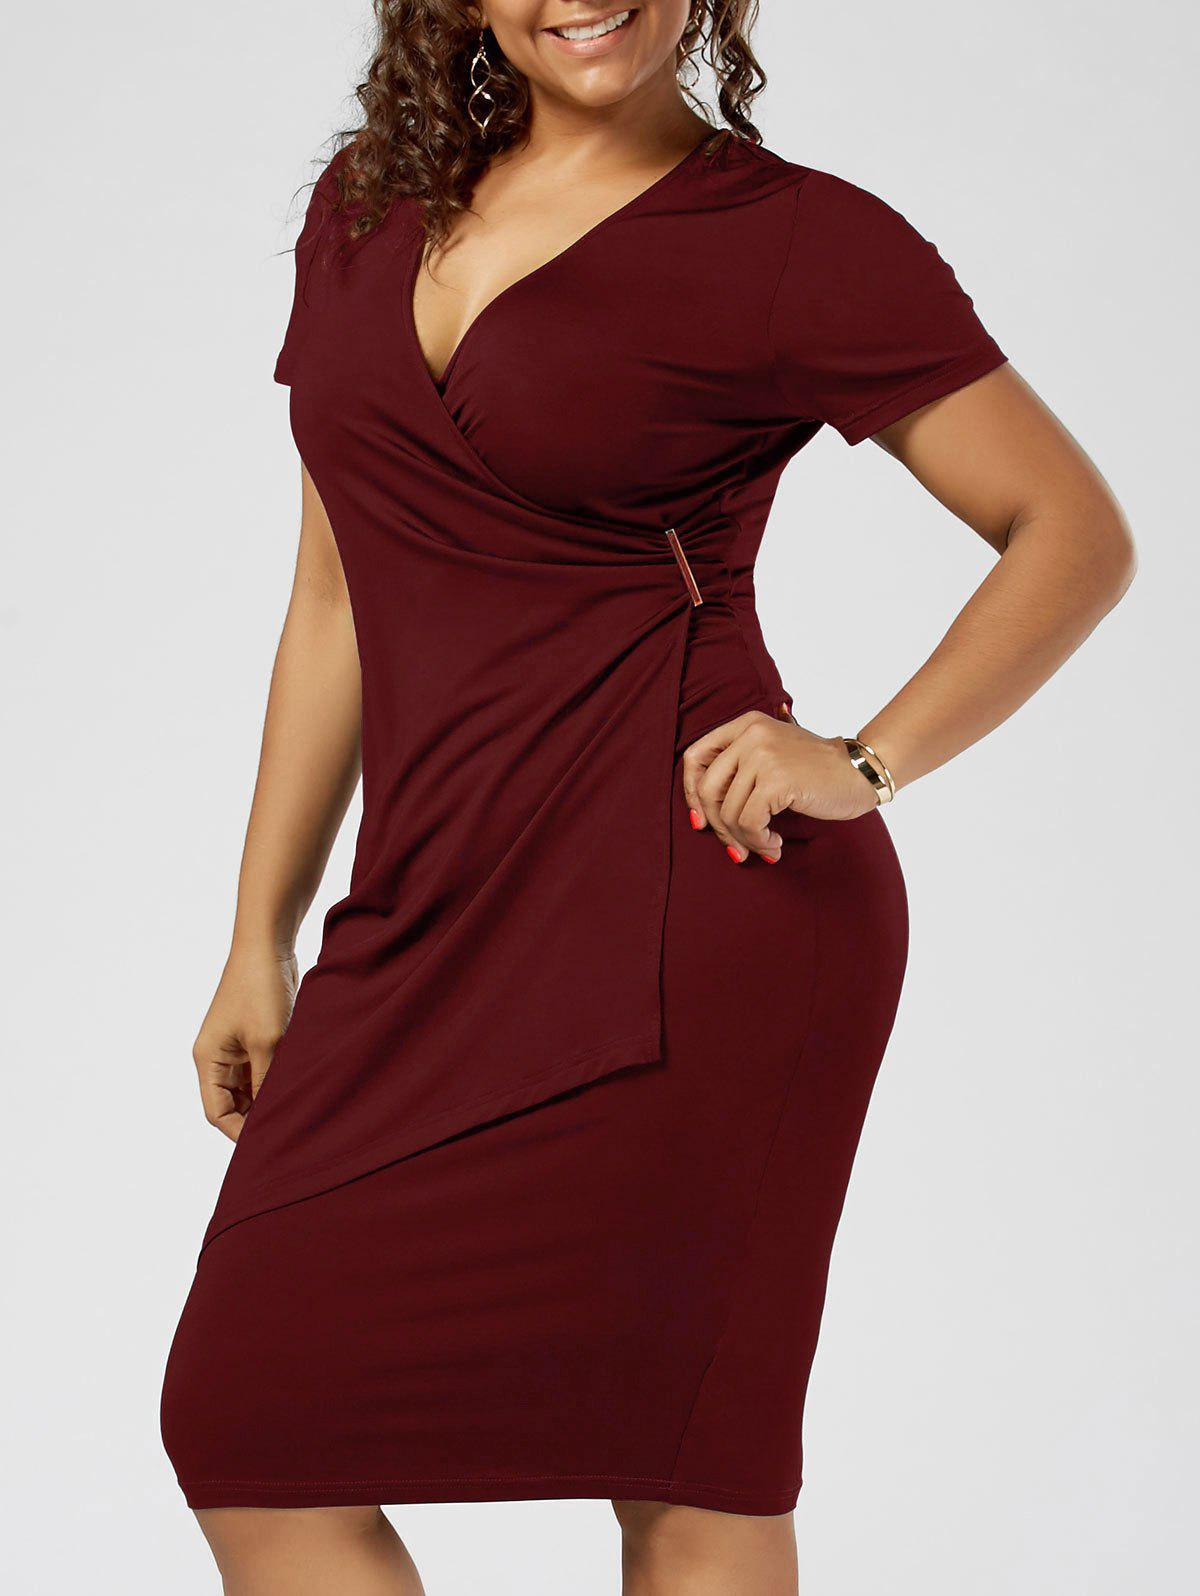 Plus Size Overlap Plain Tight Surplice V Neck Sheath DressWOMEN<br><br>Size: 2XL; Color: WINE RED; Style: Brief; Material: Polyester,Spandex; Silhouette: Sheath; Dresses Length: Knee-Length; Neckline: V-Neck; Sleeve Length: Short Sleeves; Pattern Type: Solid Color; With Belt: No; Season: Summer; Weight: 0.3200kg; Package Contents: 1 x Dress;